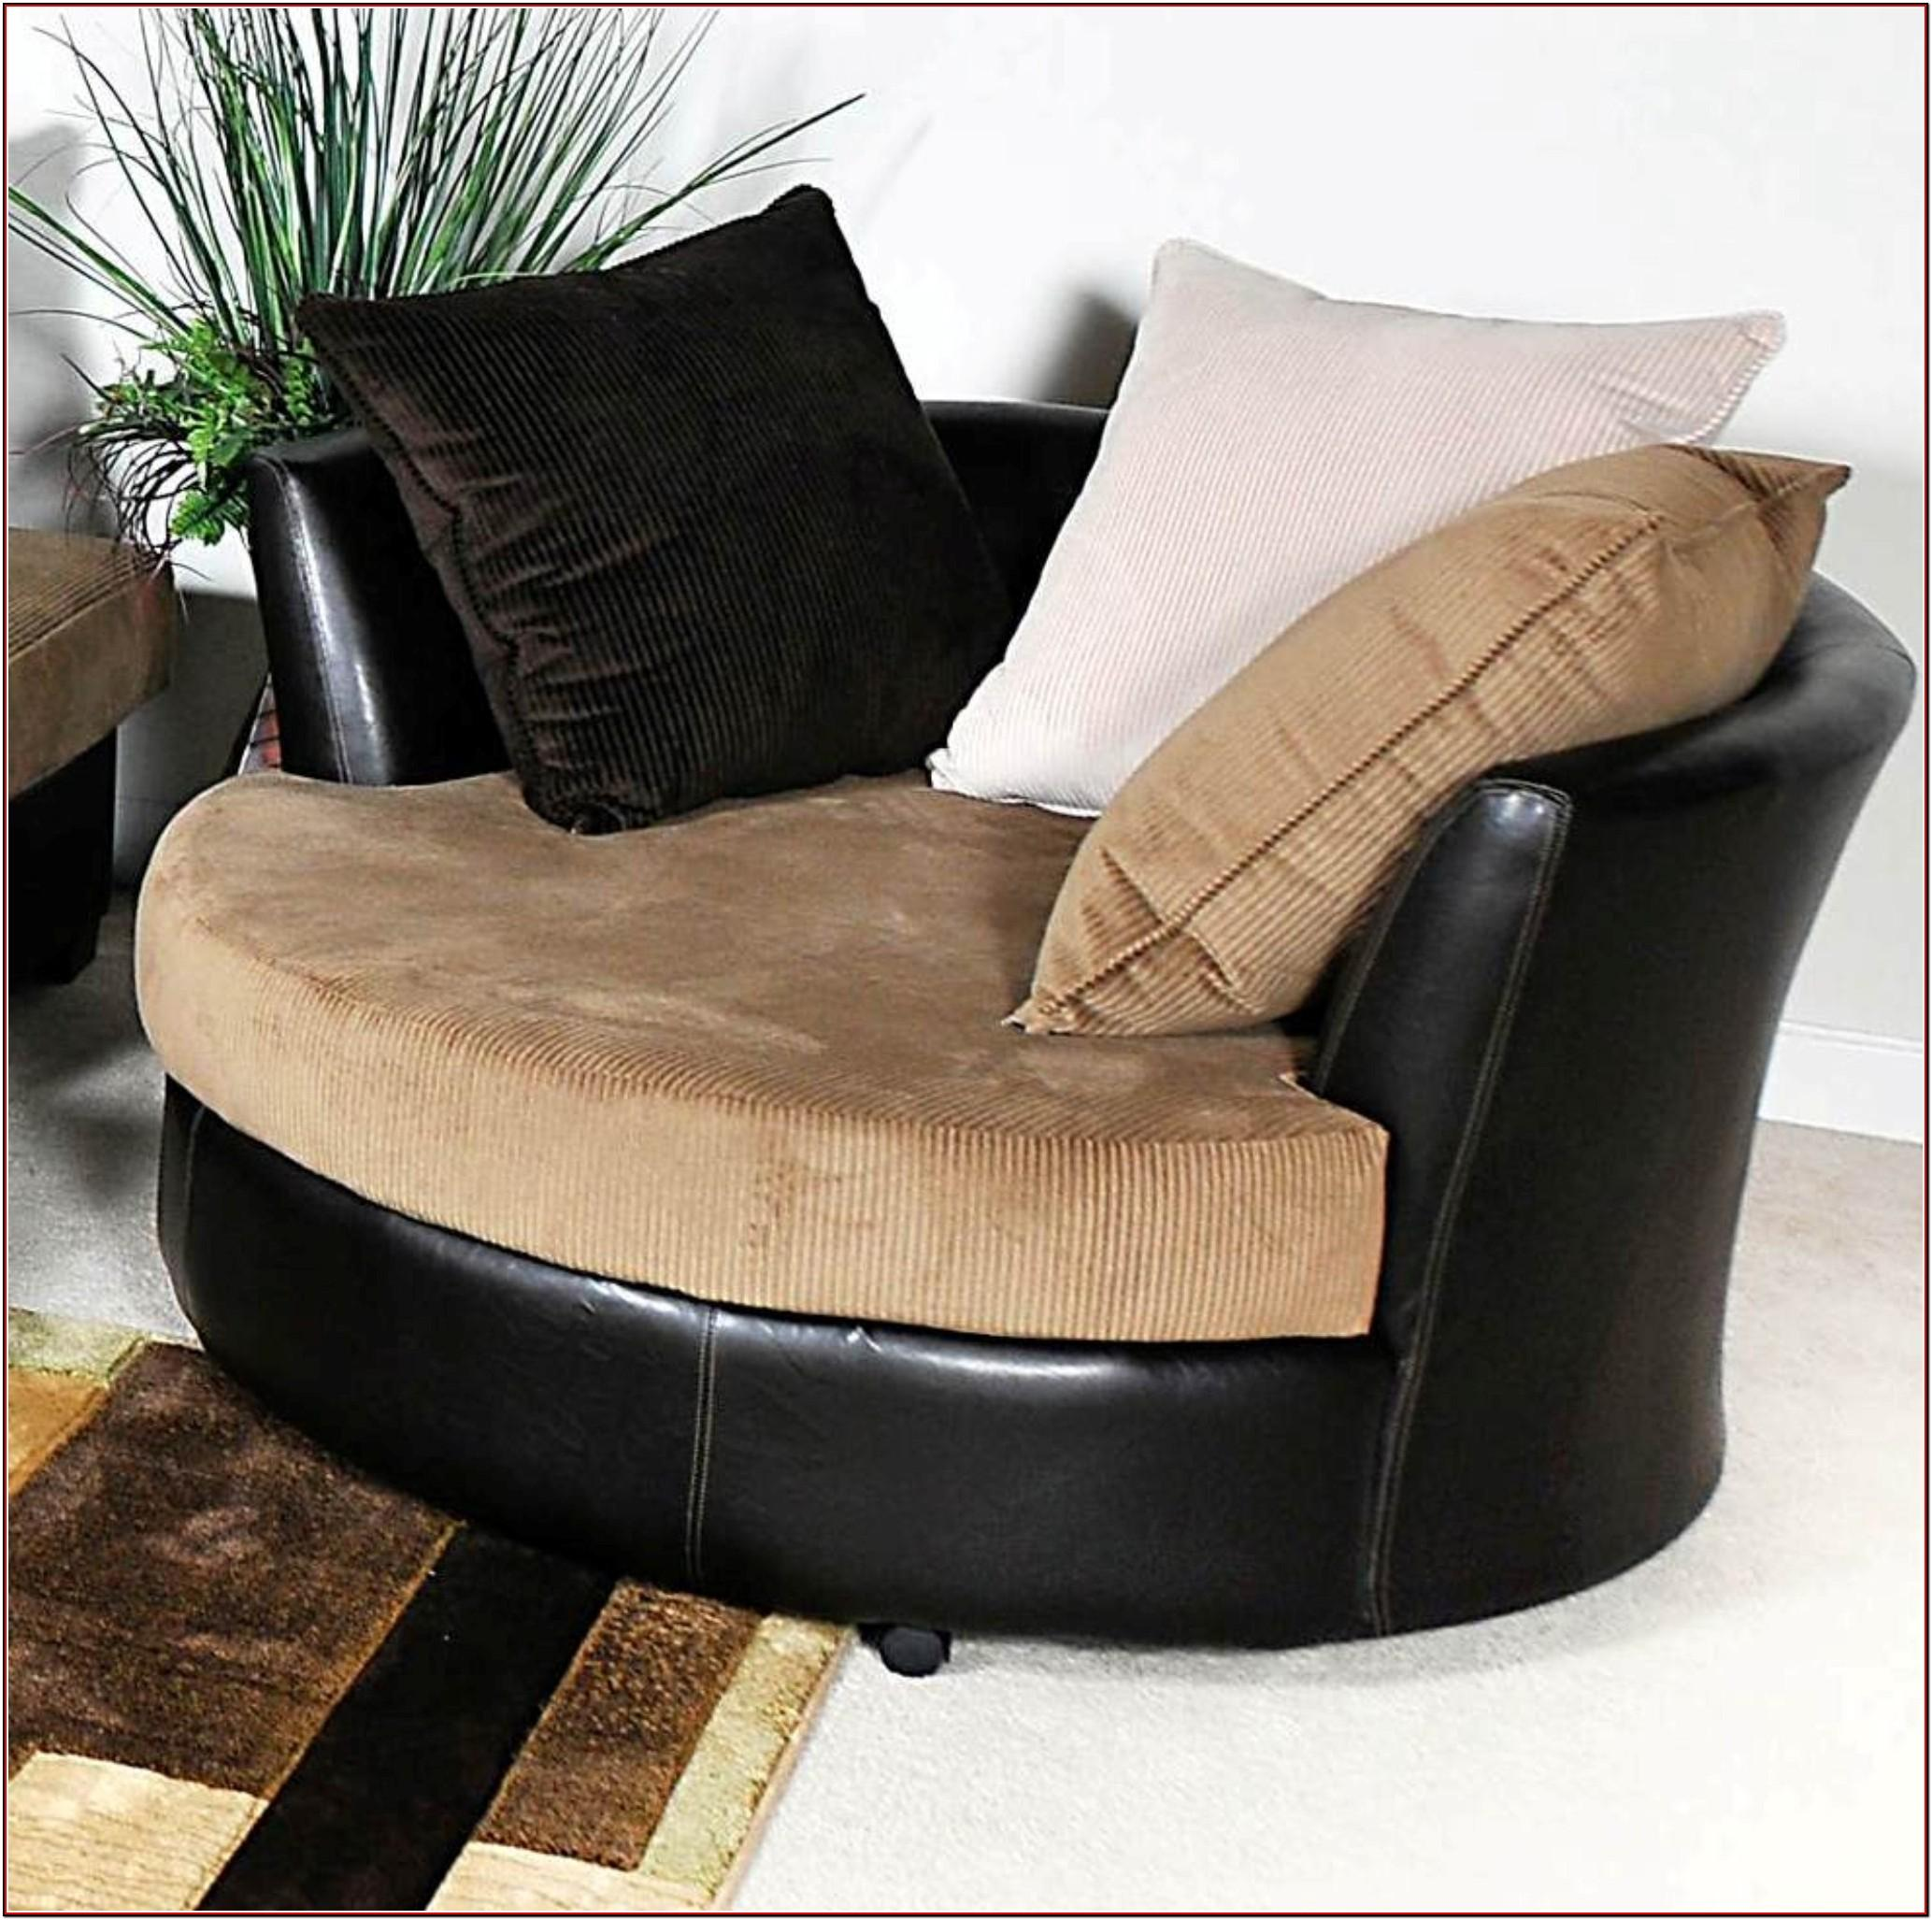 Large Round Chairs For Living Room